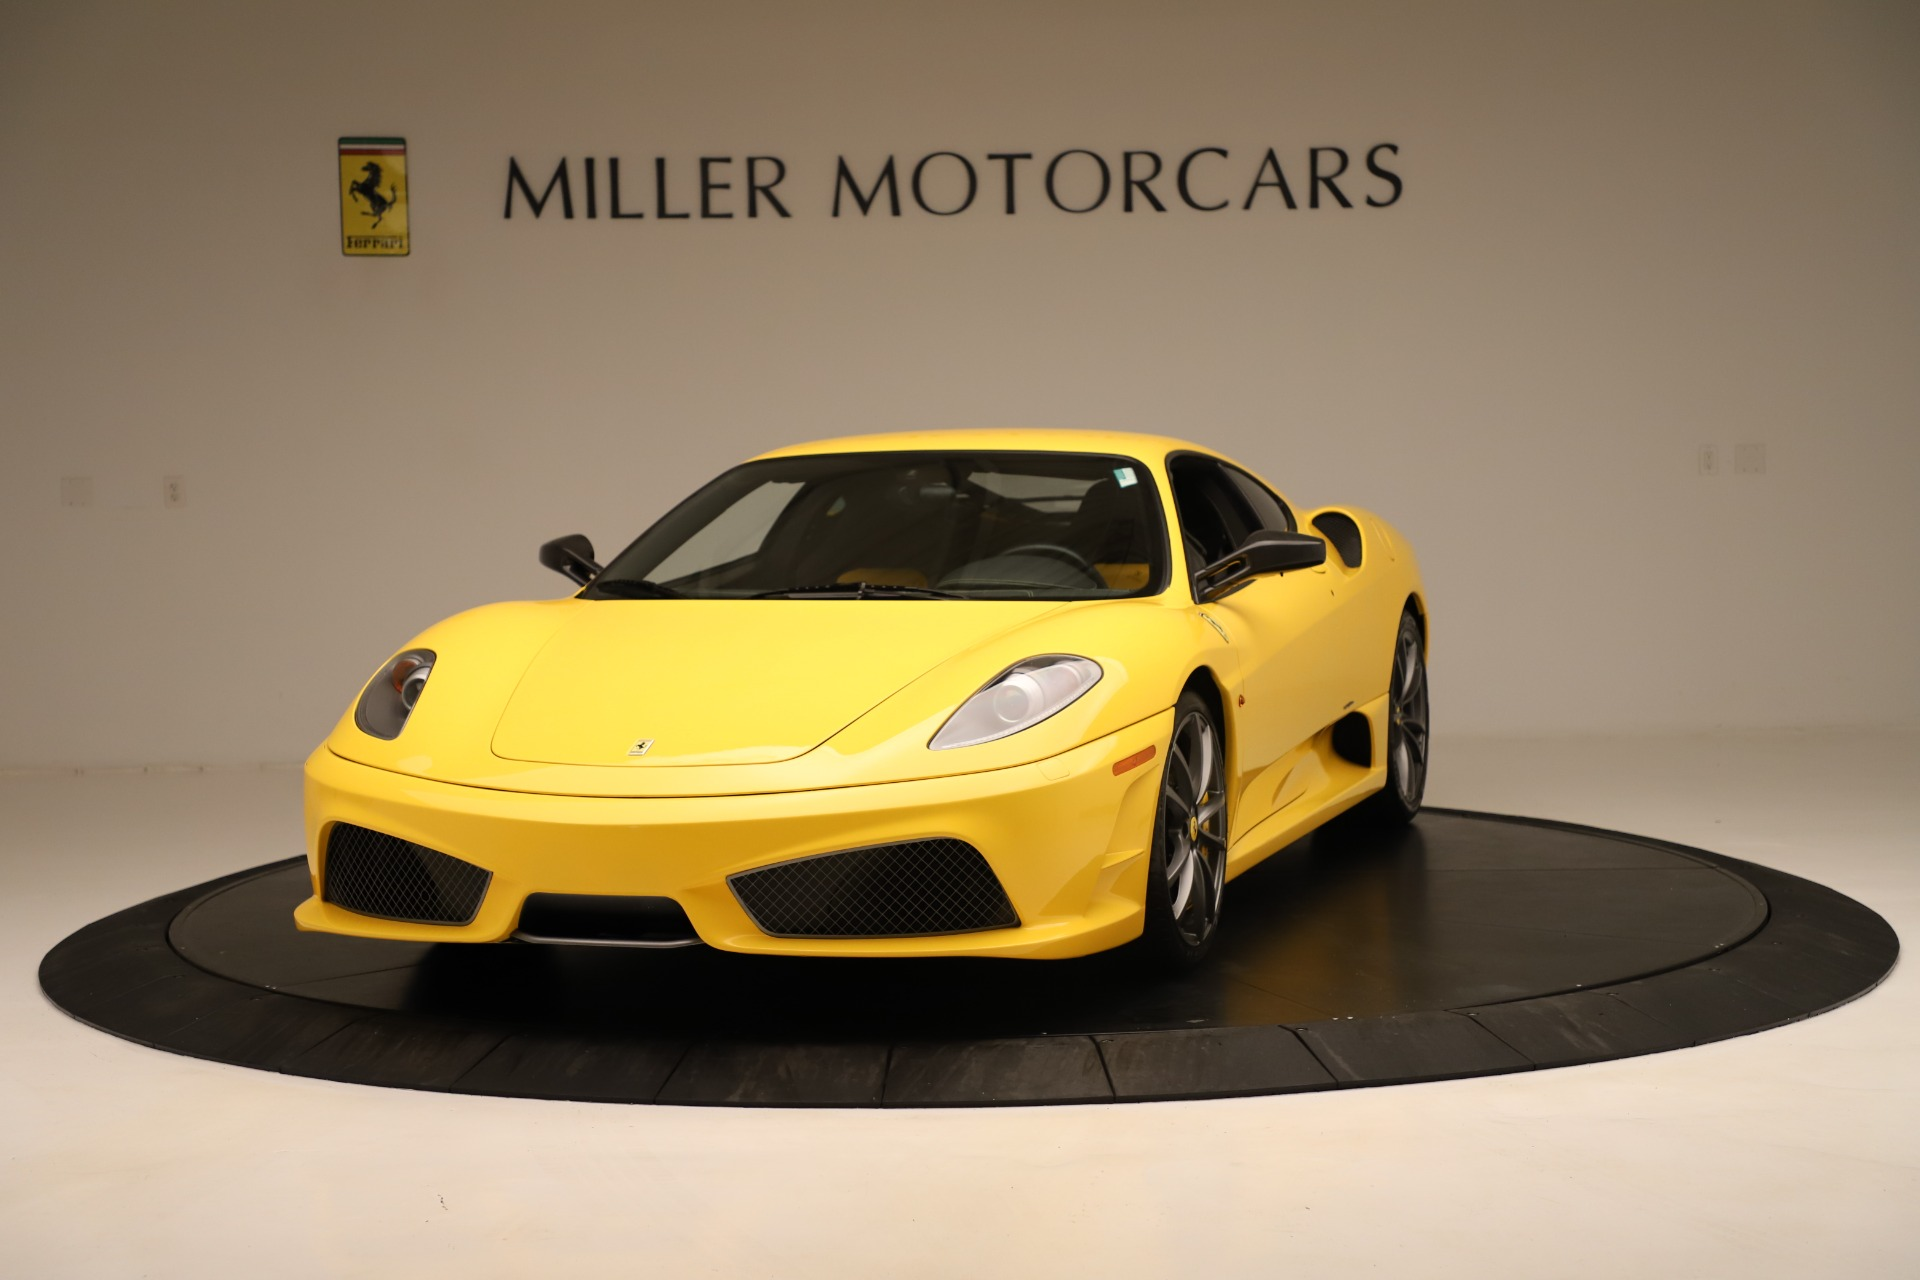 Used 2008 Ferrari F430 Scuderia for sale Sold at Bentley Greenwich in Greenwich CT 06830 1